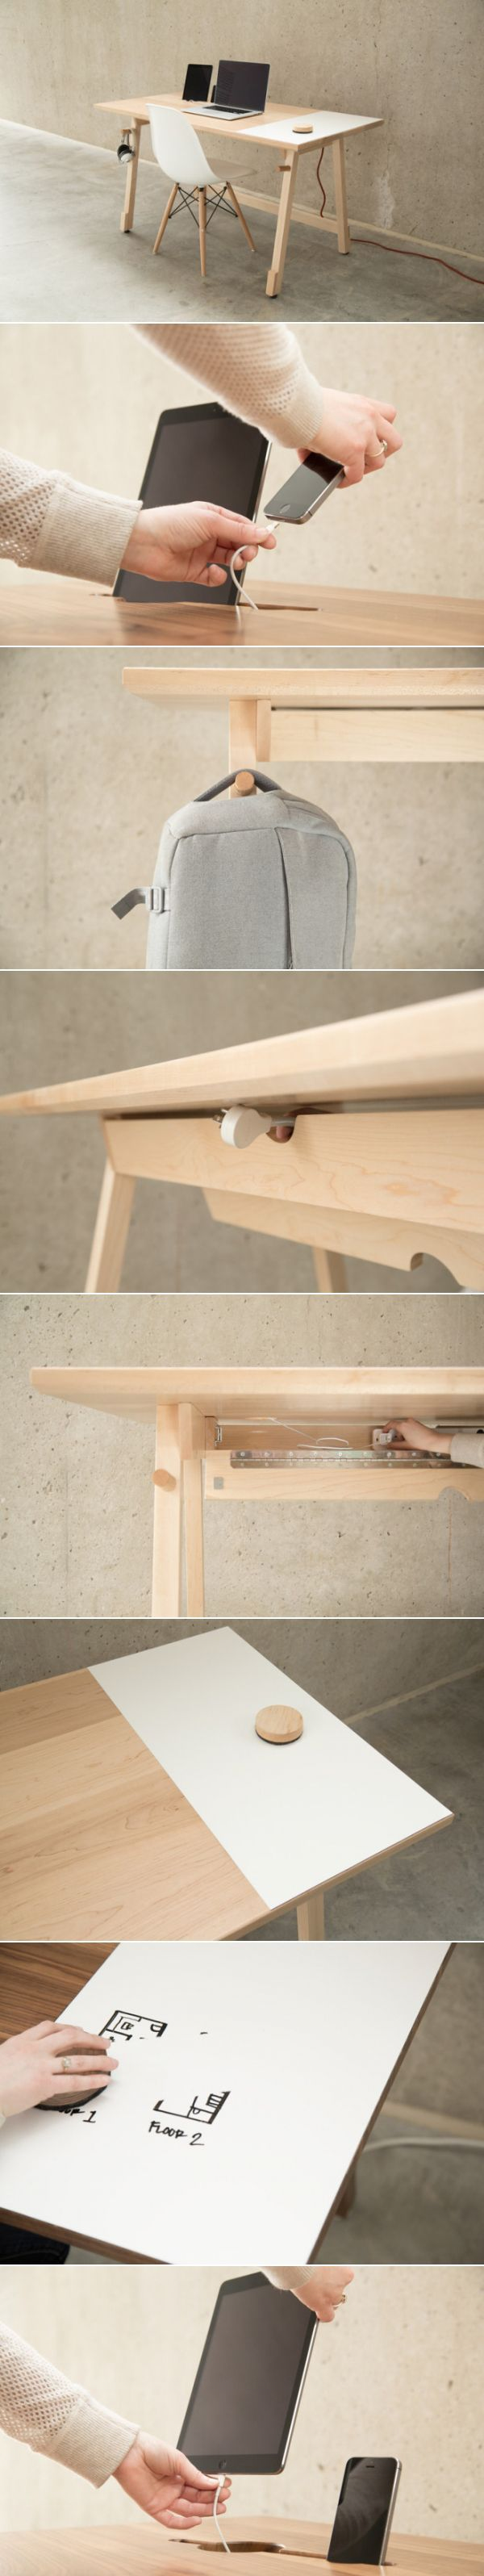 Artifox Has Created the Most Practical Desk Ever